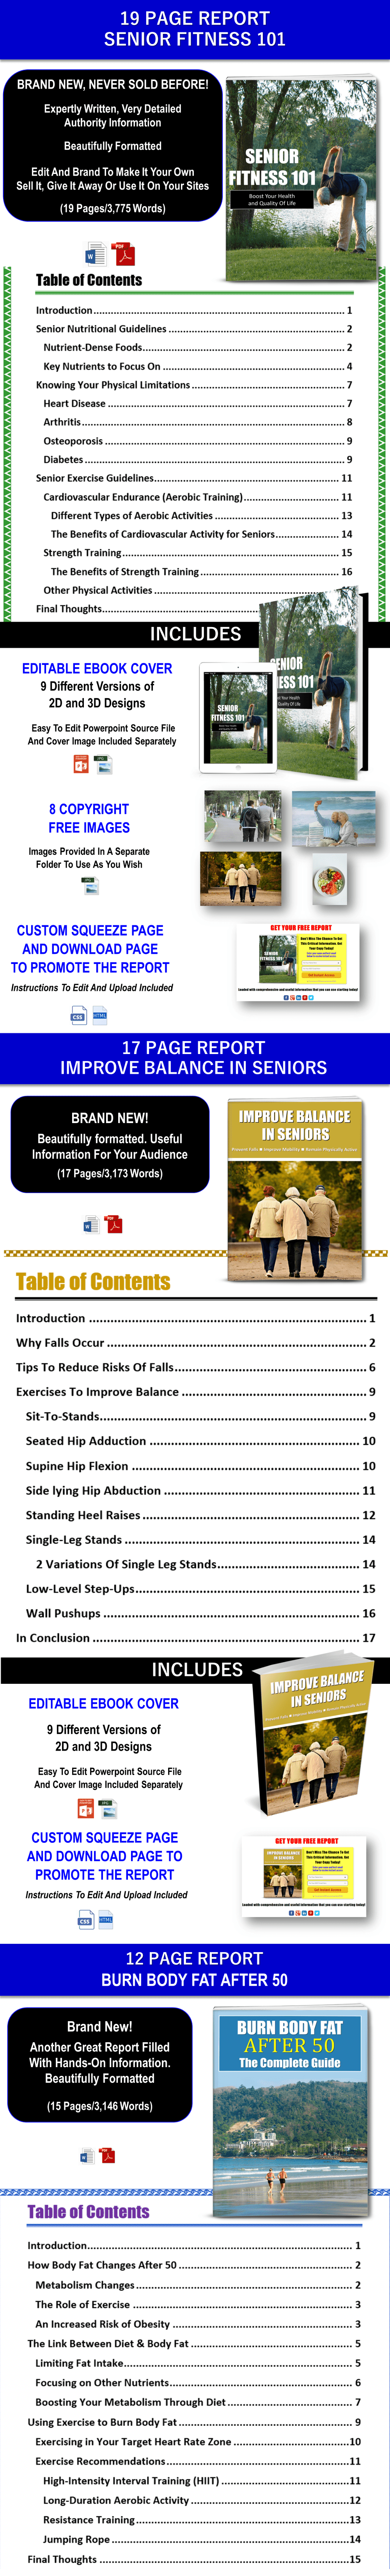 Senior Fitness and Fat Burning As You Age Content - PLR Rights